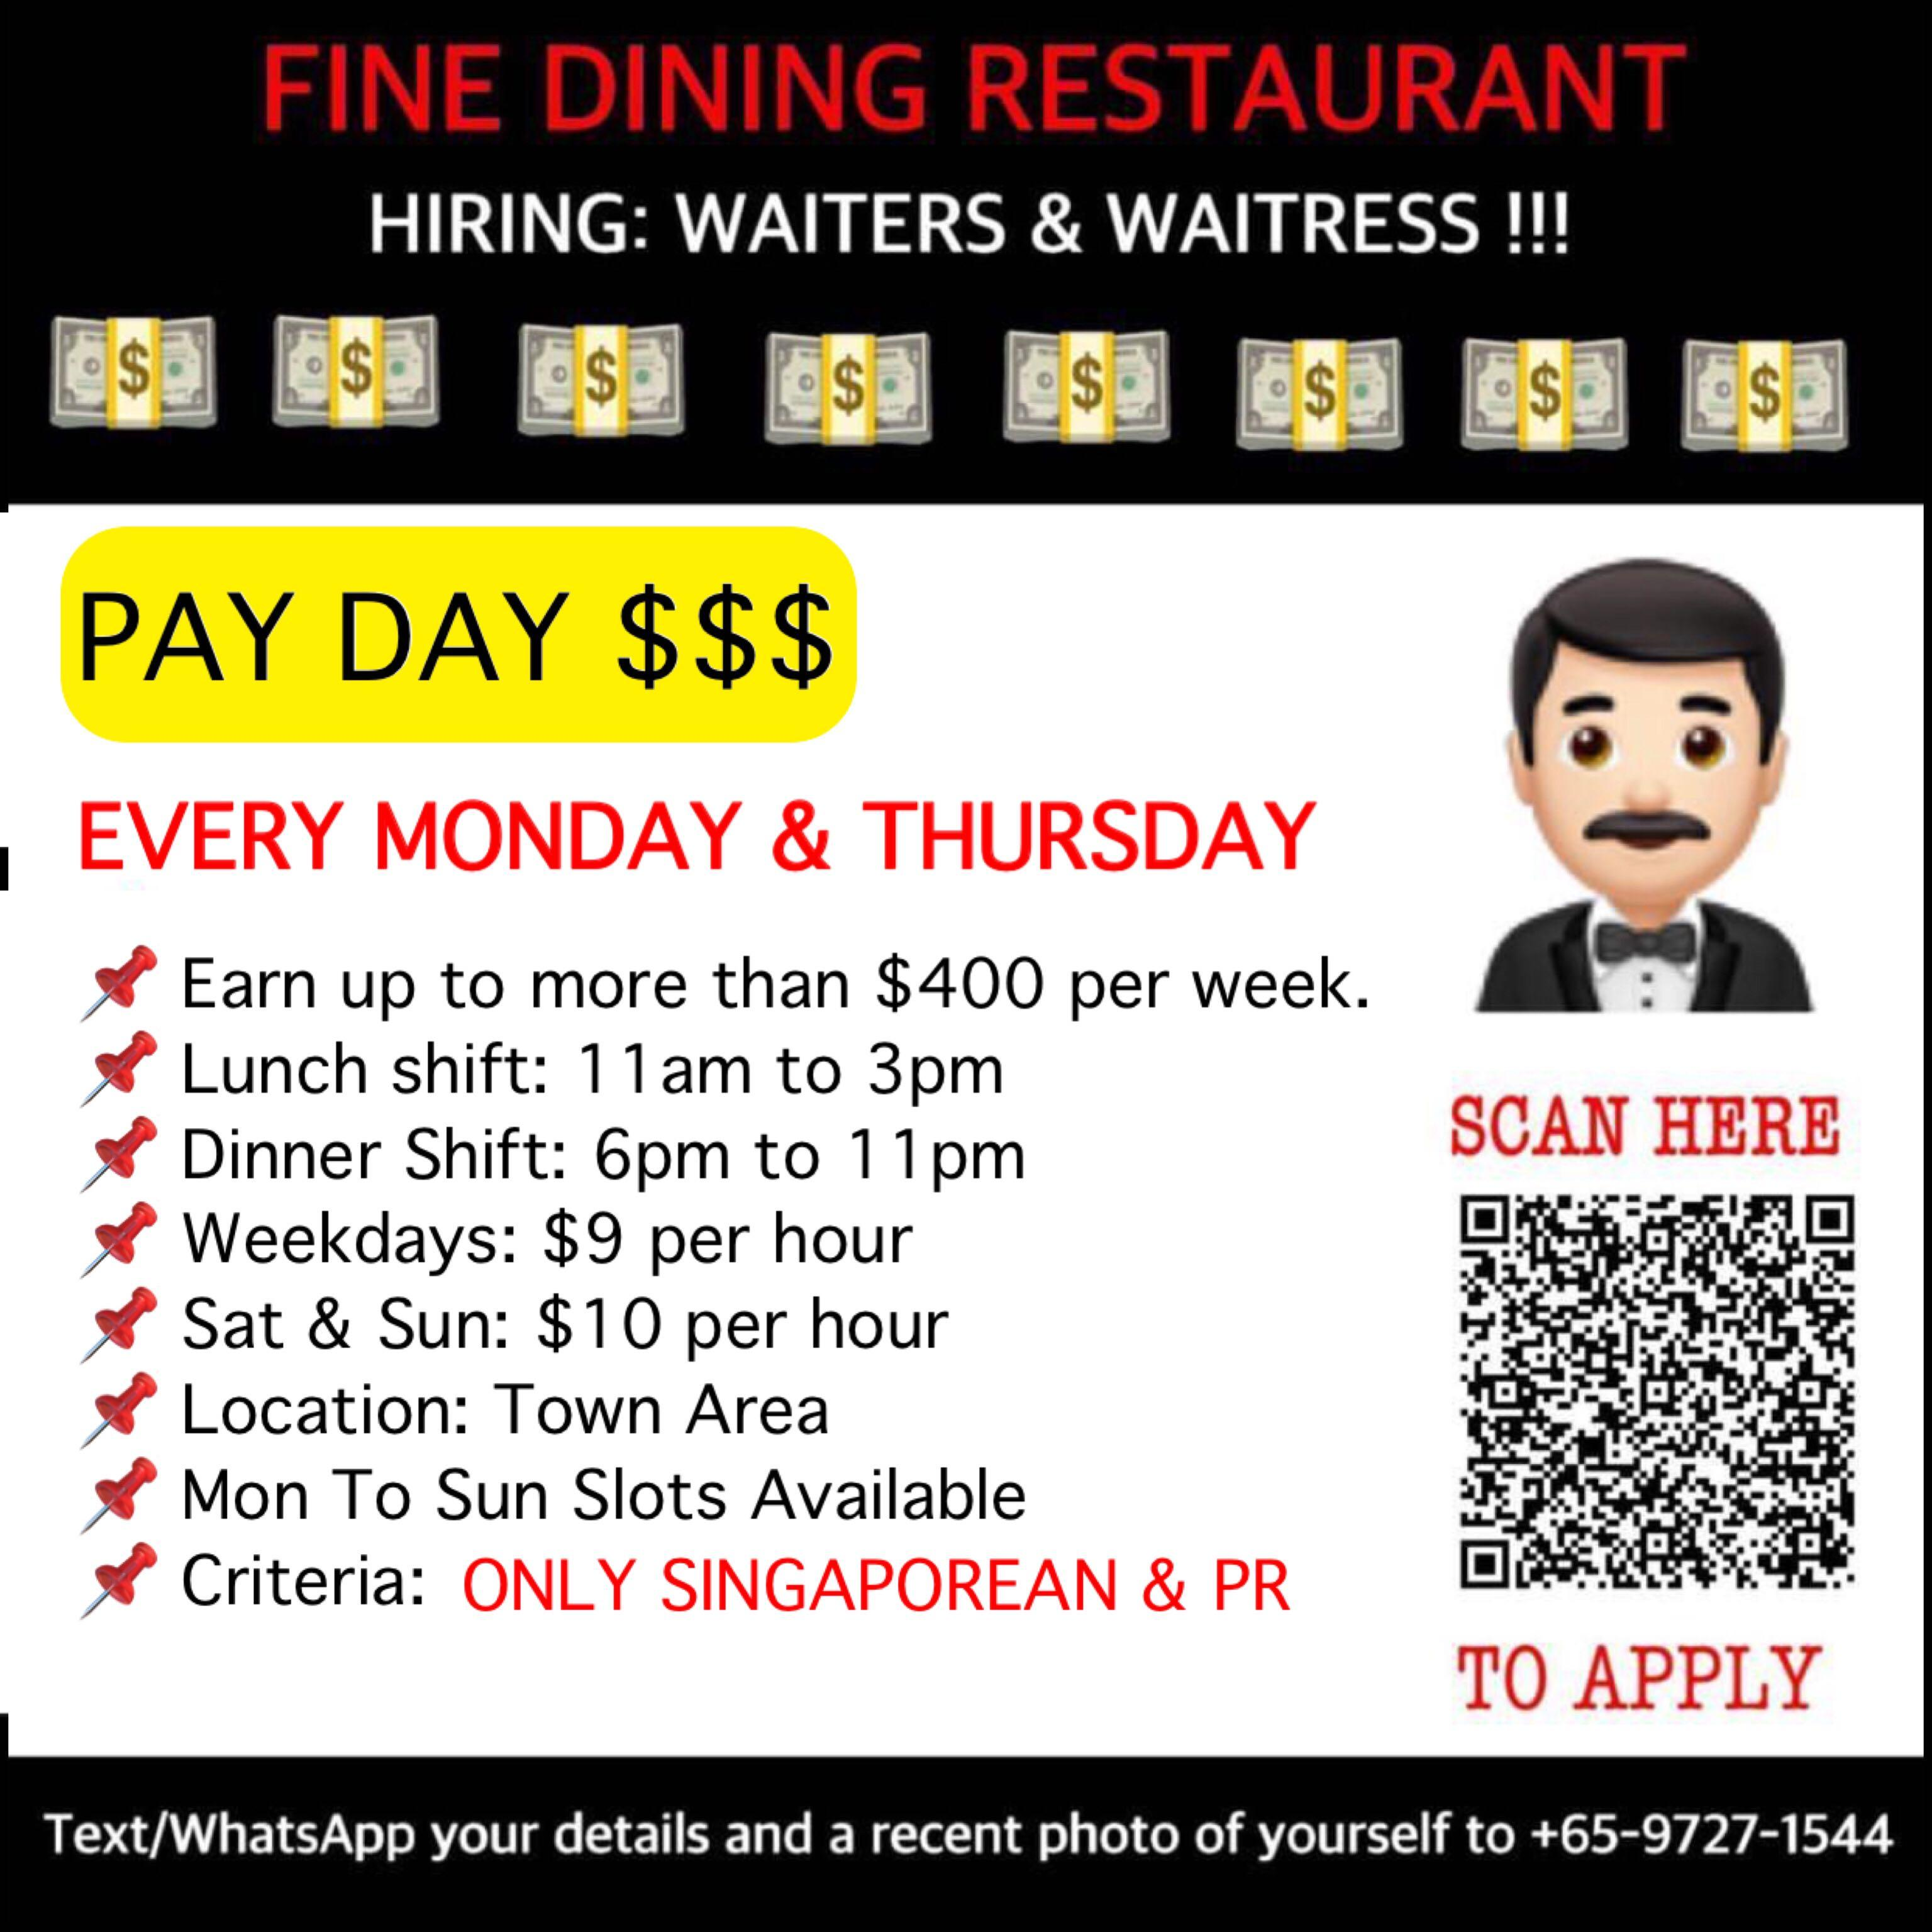 Fine Dining Restaurant [$9 / $10 Per Hour] Weekly Payout